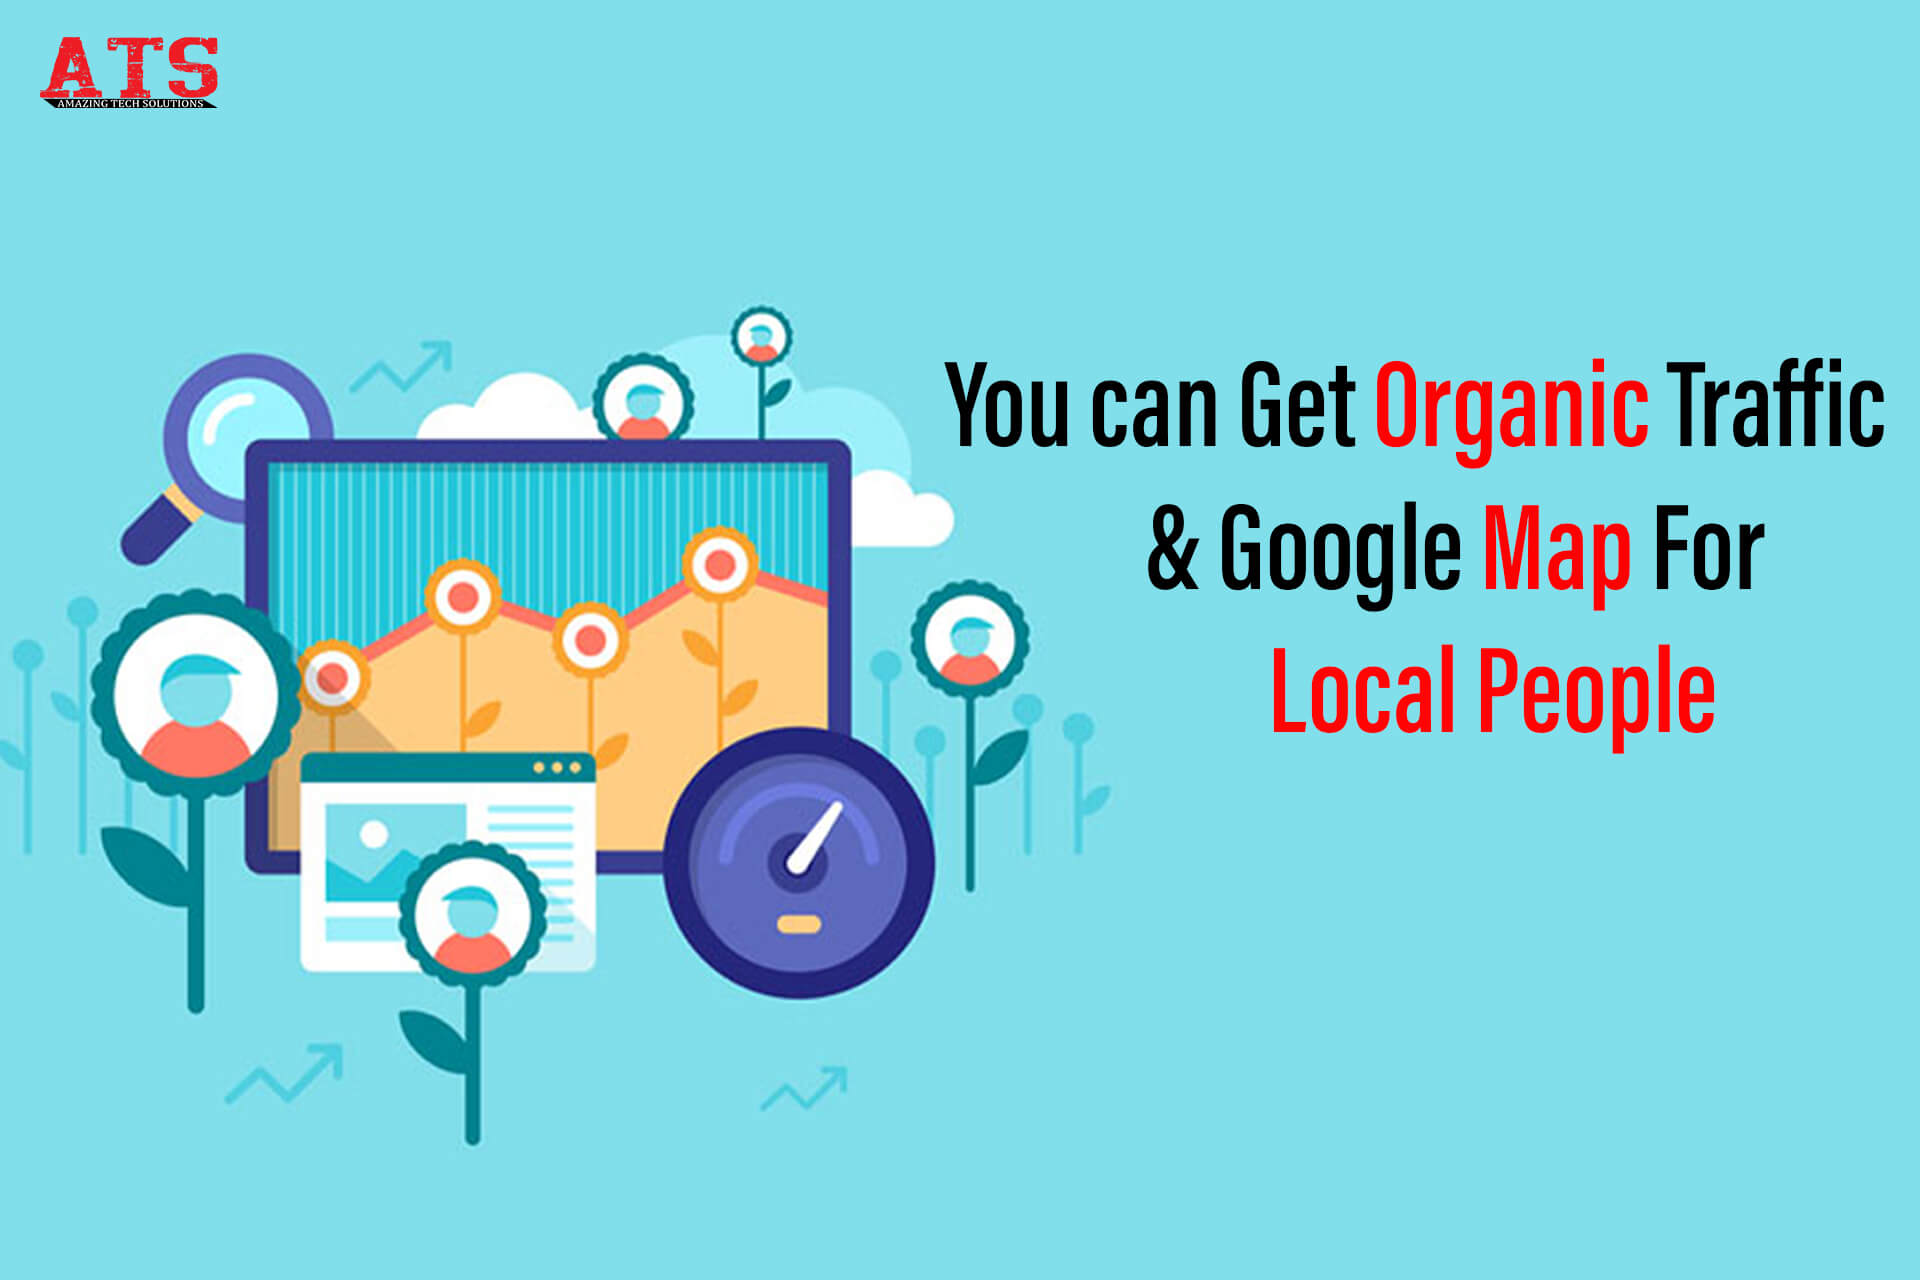 You can get organic traffic if your business have a website